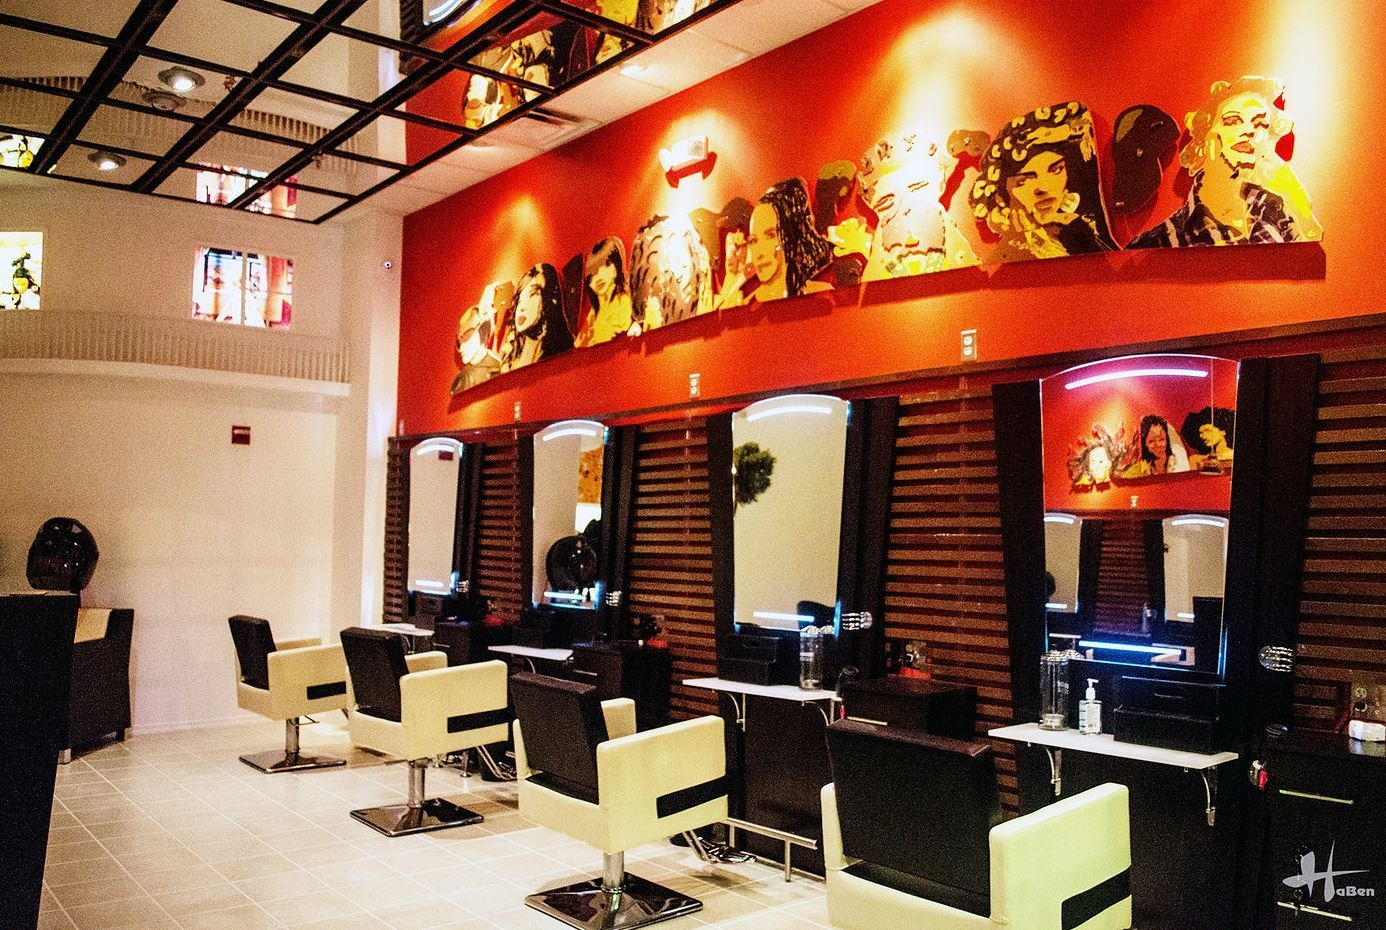 Adiam Salon & Spa